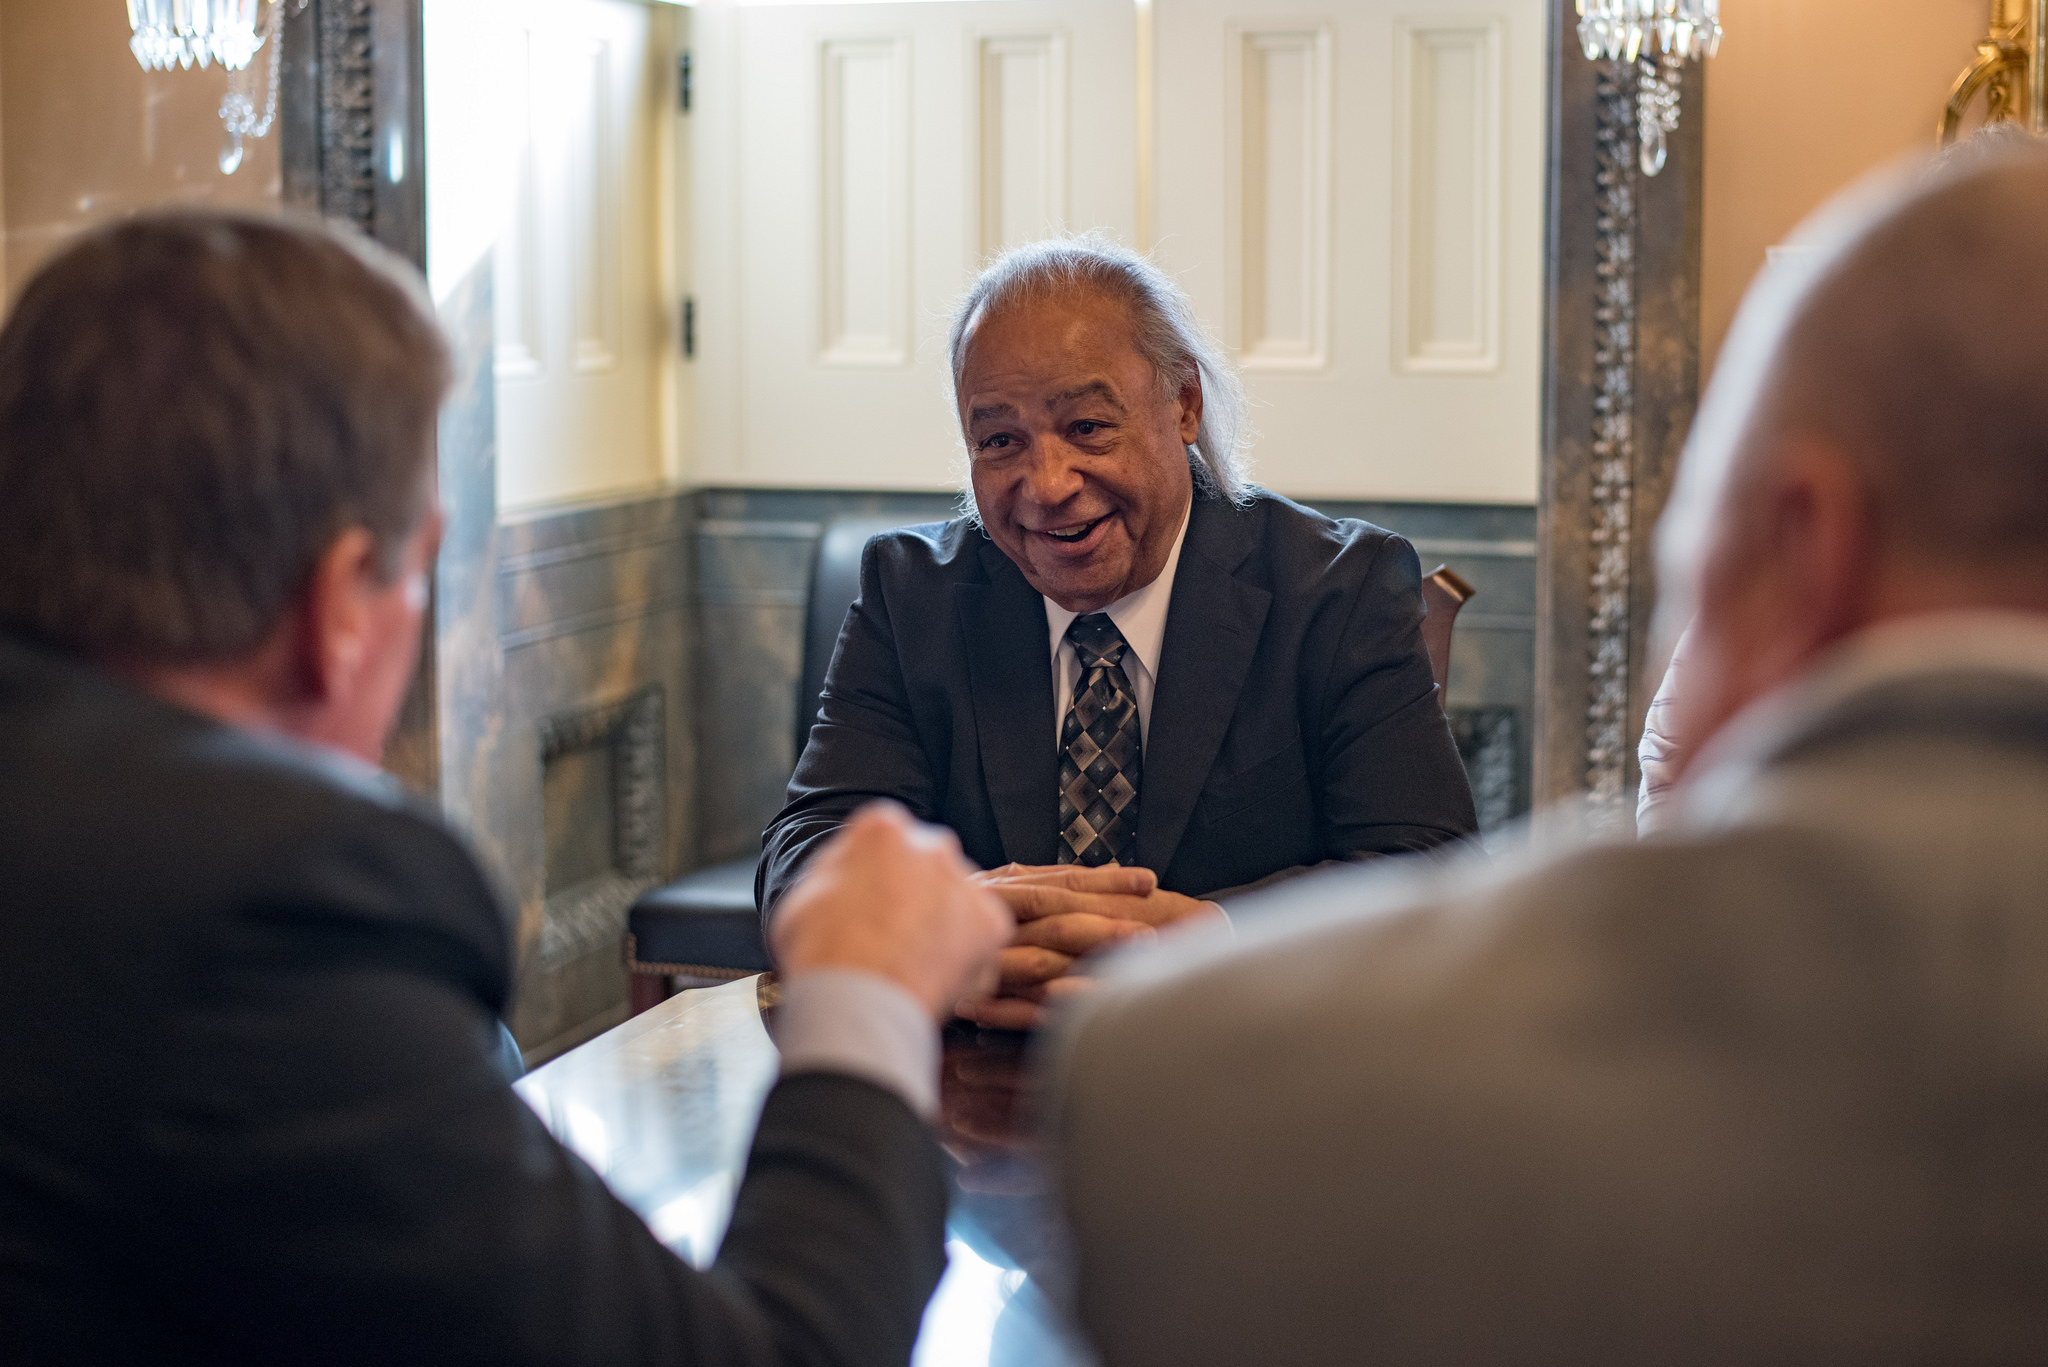 Photo shows Stephen R. Adkins (center), chief, Chickahominy Indian Tribe, in Senate Chamber just prior to Senate vote on the Thomasina E. Jordan Indian Tribes of Virginia Federal Recognition Act of 2017, Jan. 11, 2017. Courtesy: Senator Tim Kaine (D-...